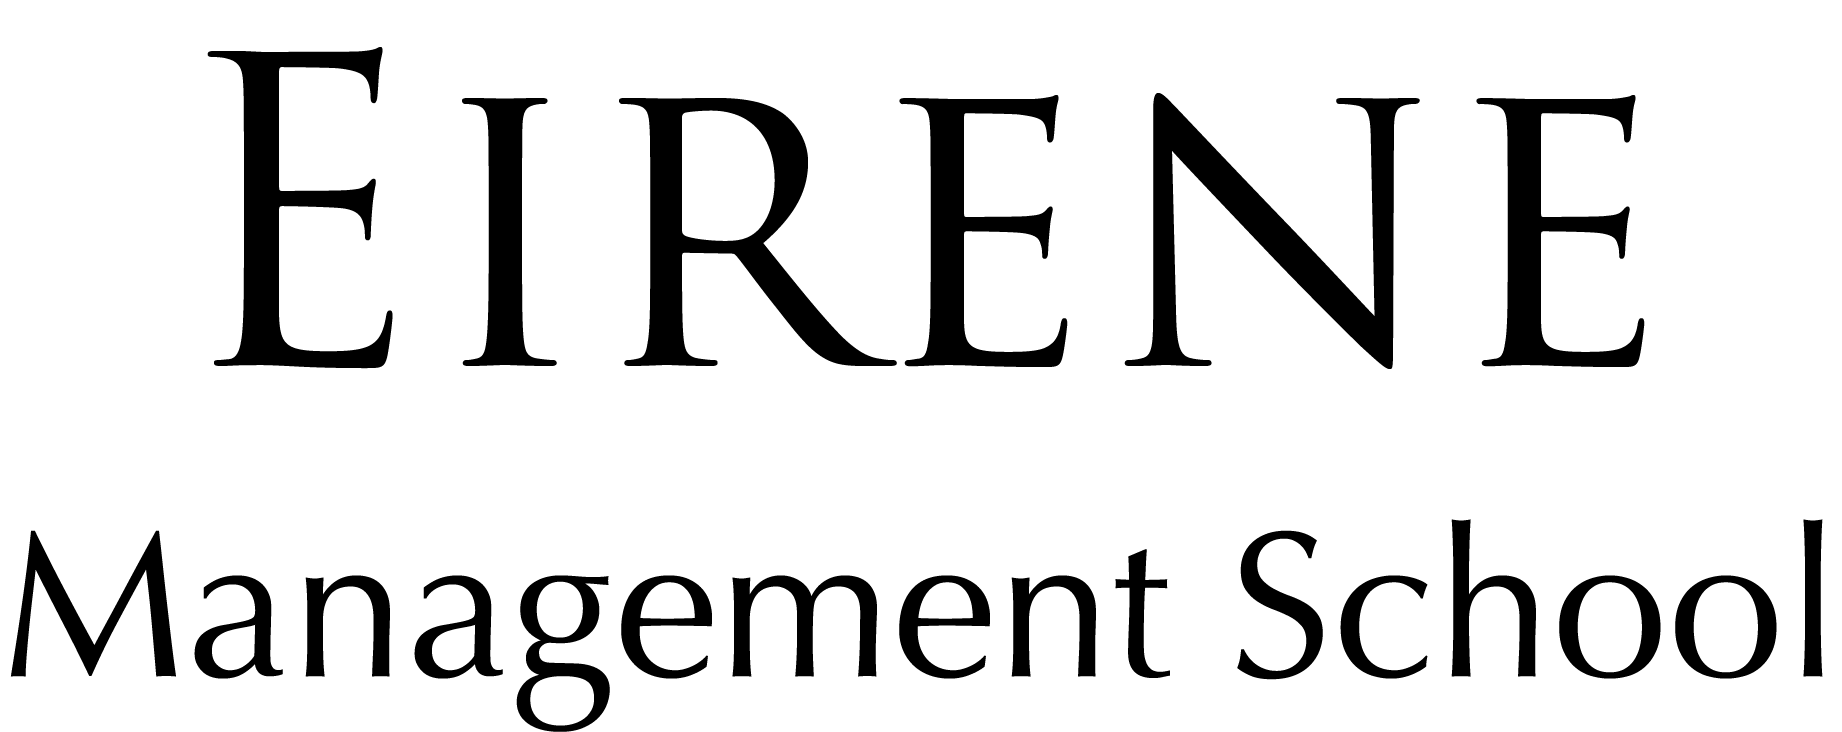 Wordmark_Eirene Management School